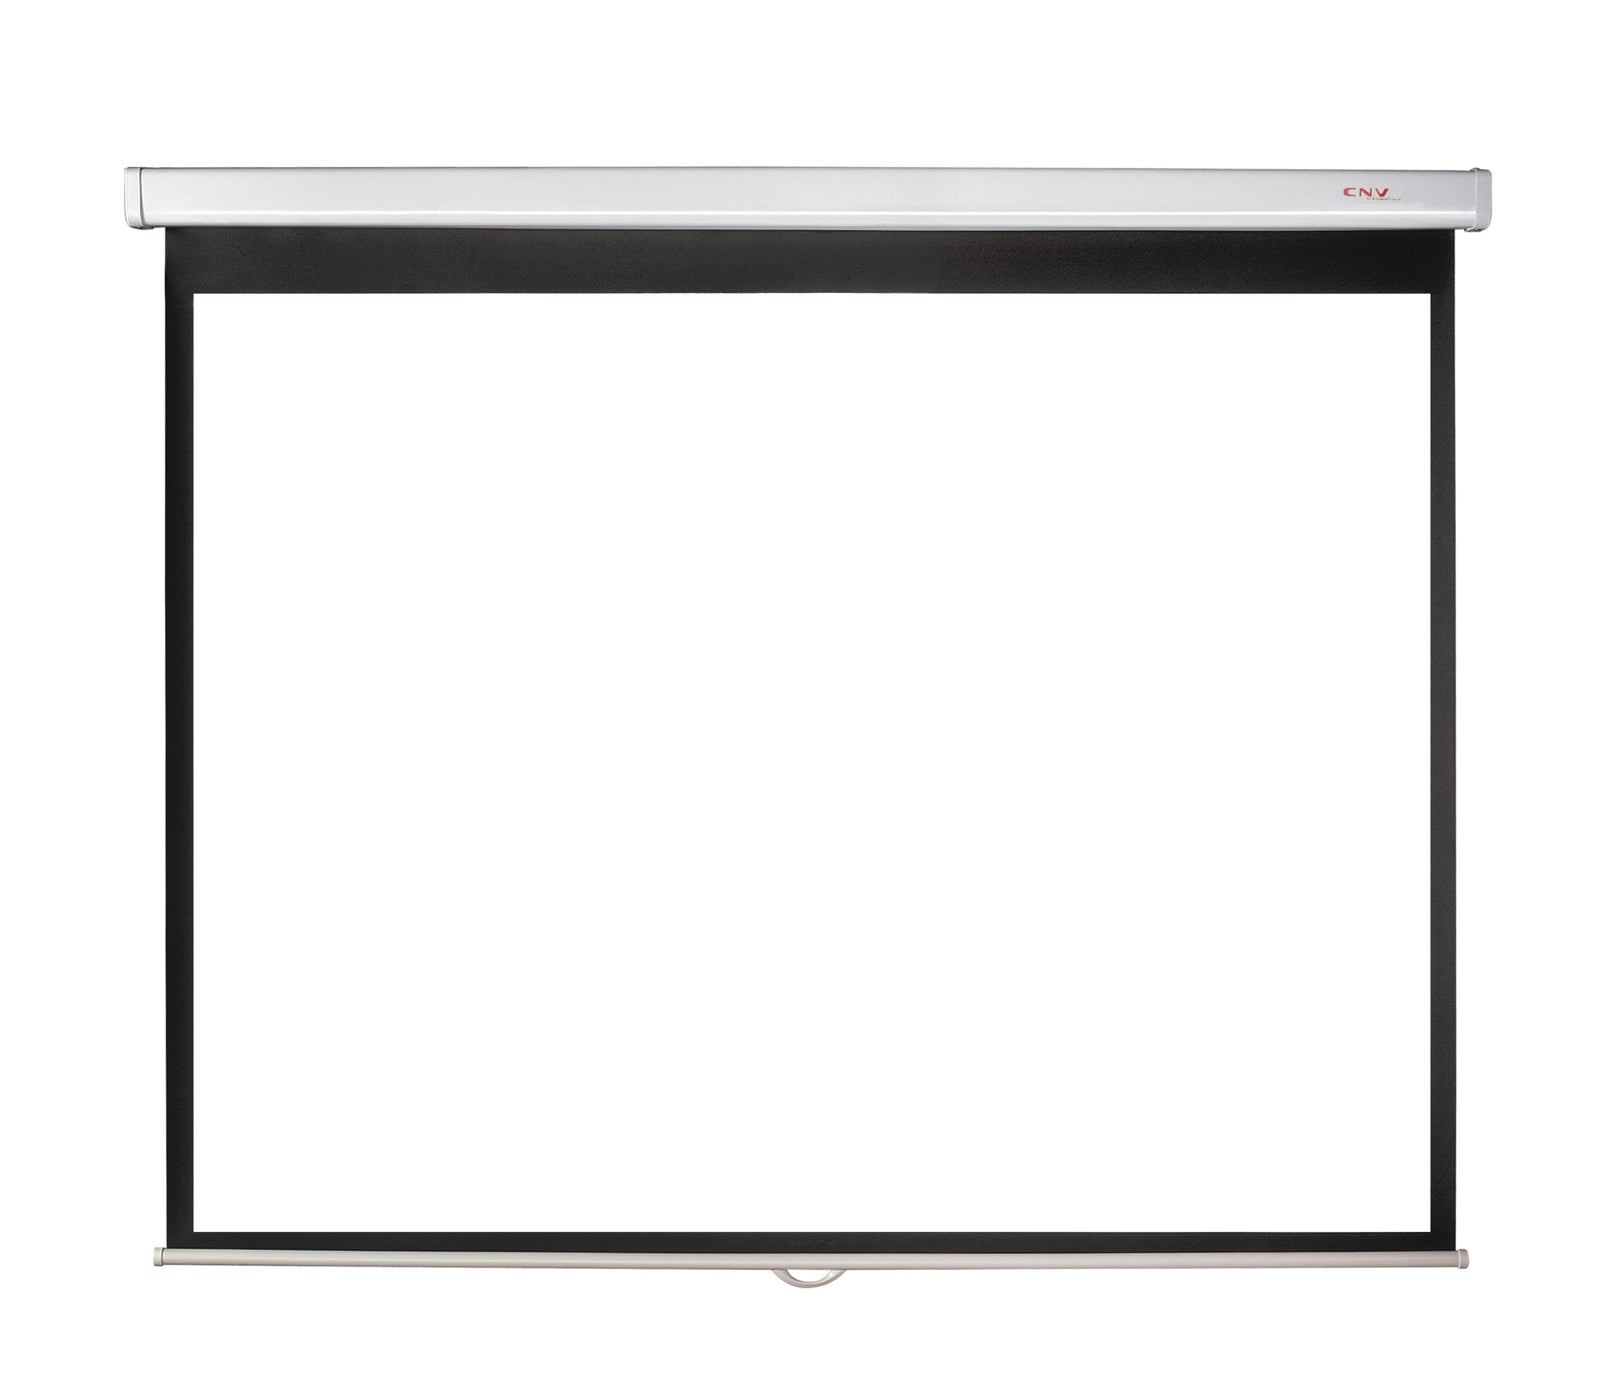 "100"" 4:3 CNV Series Motorized Screen WM-M100CNV"